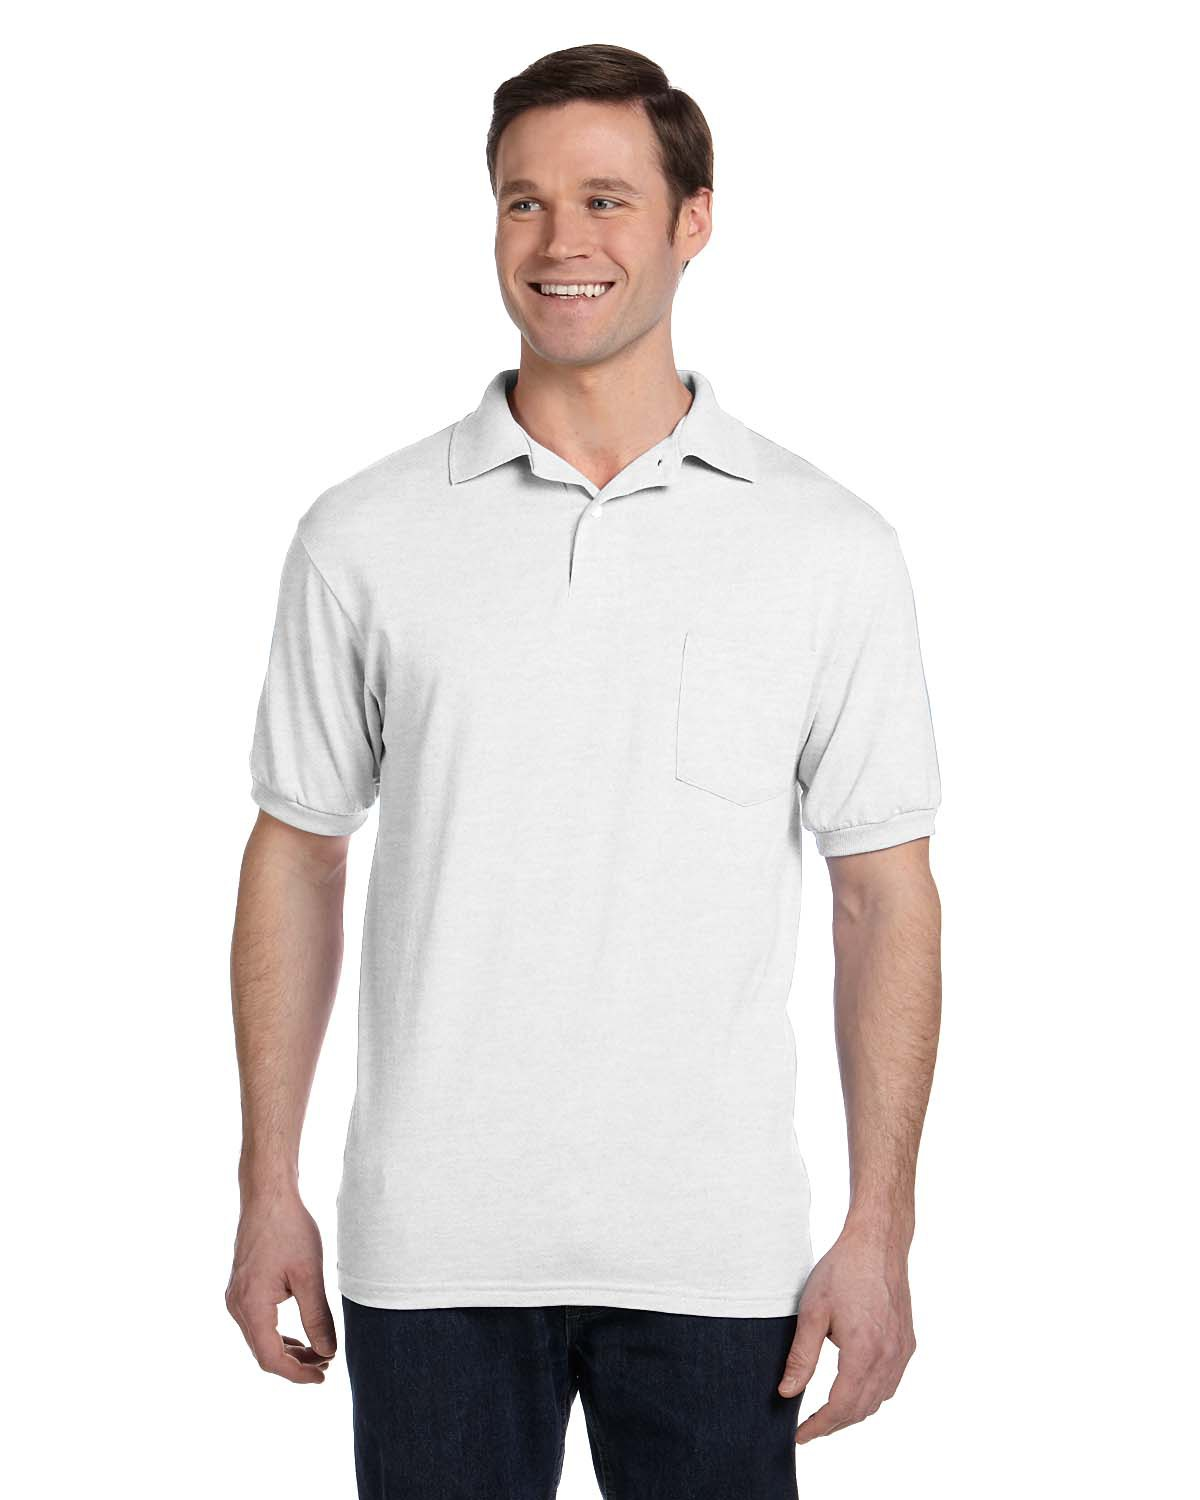 Hanes 054P Men 5.2 oz., 50/50 EcoSmart Jersey Pocket Polo White at GotApparel